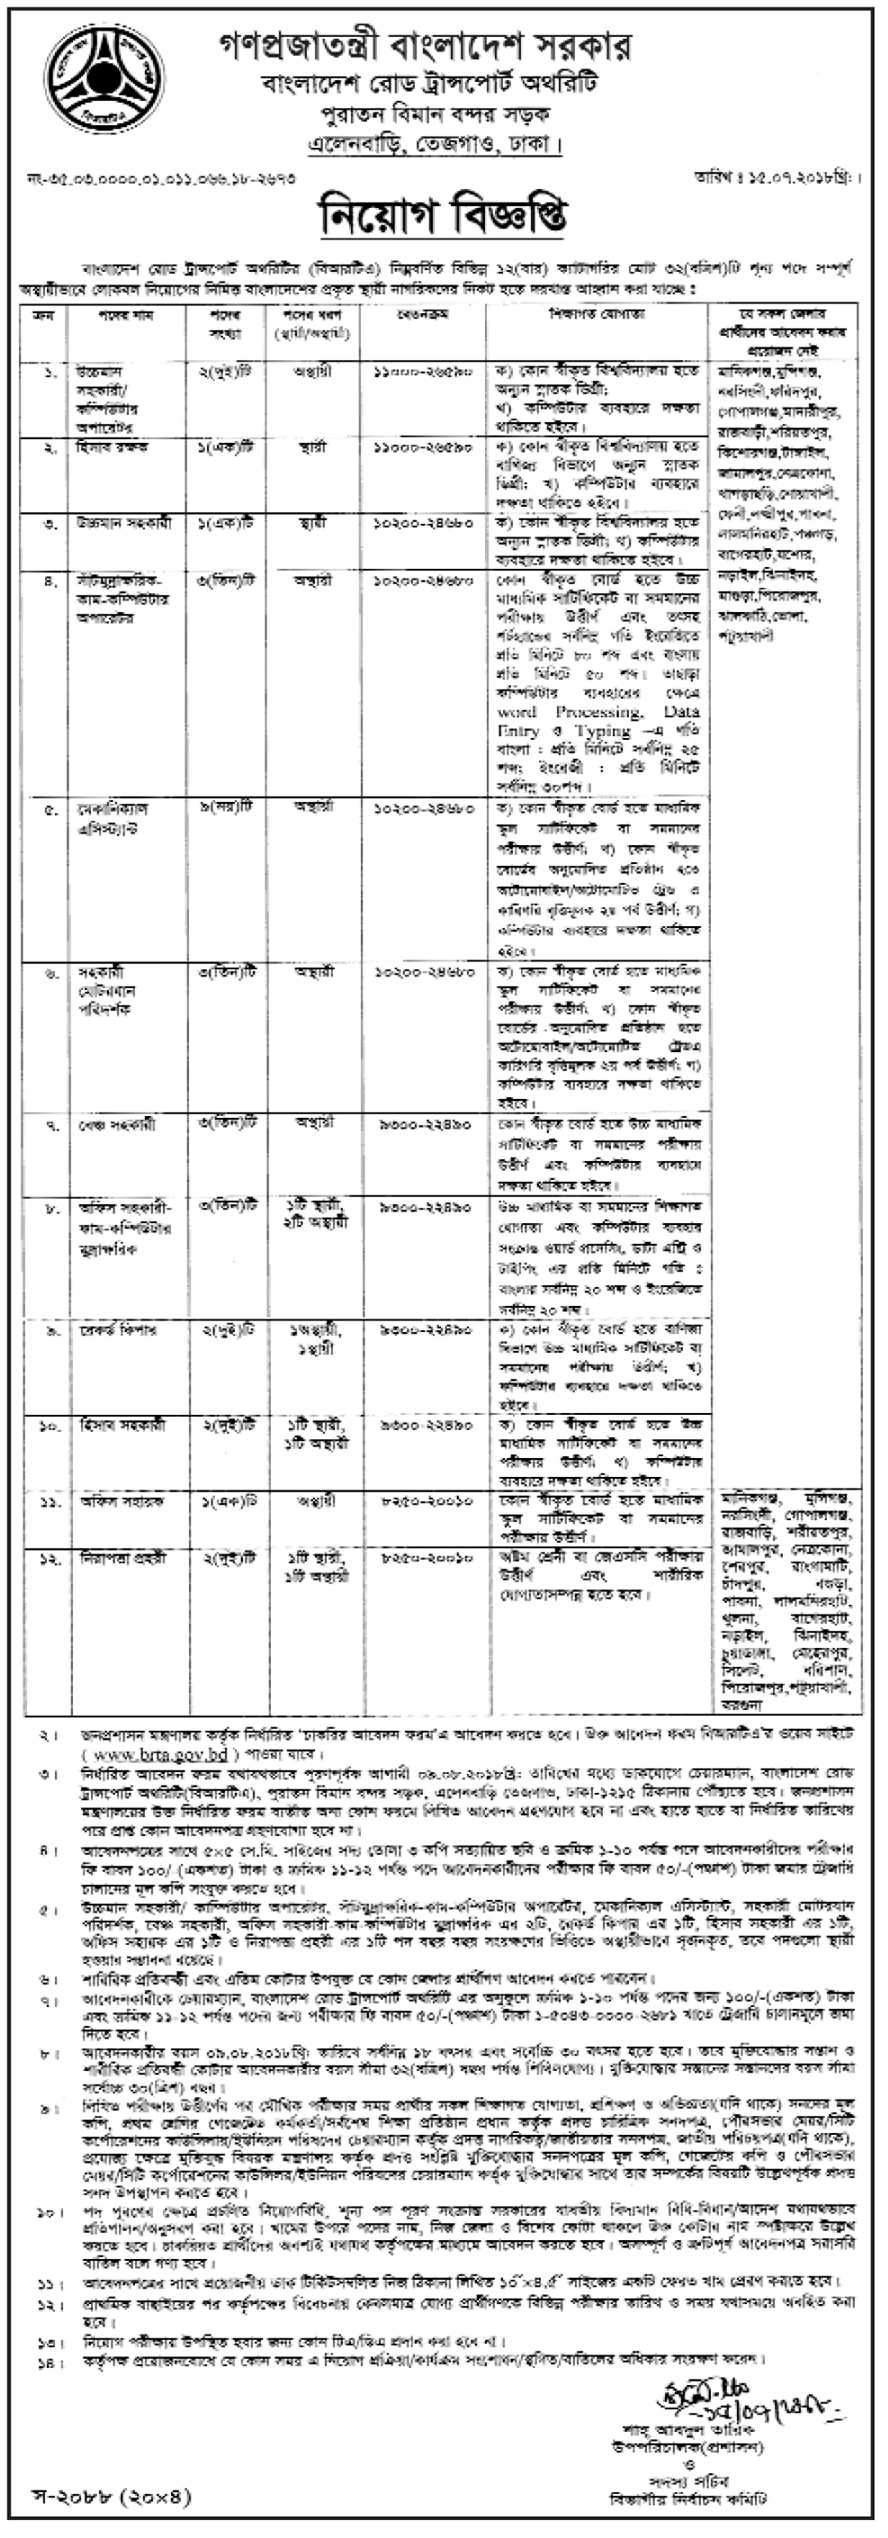 Bangladesh Road Transport Authority BRTA Job Circular Update 2018